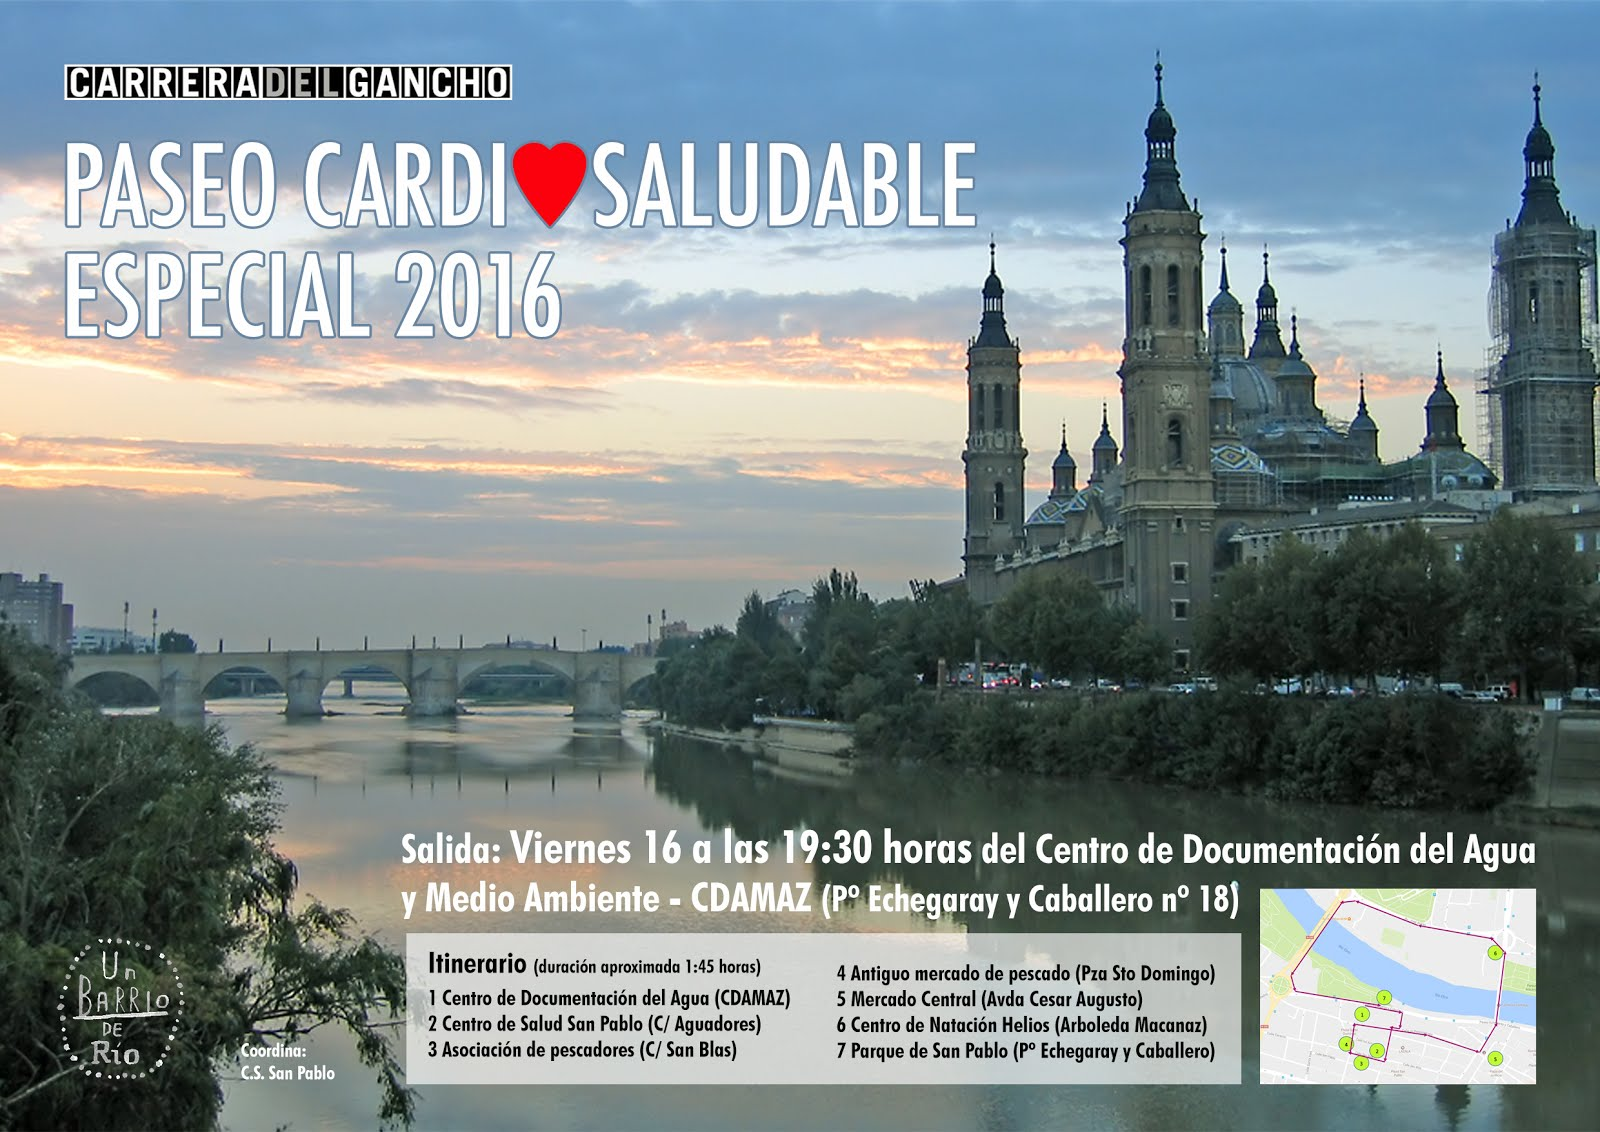 Paseo Cardiosaludable 2016